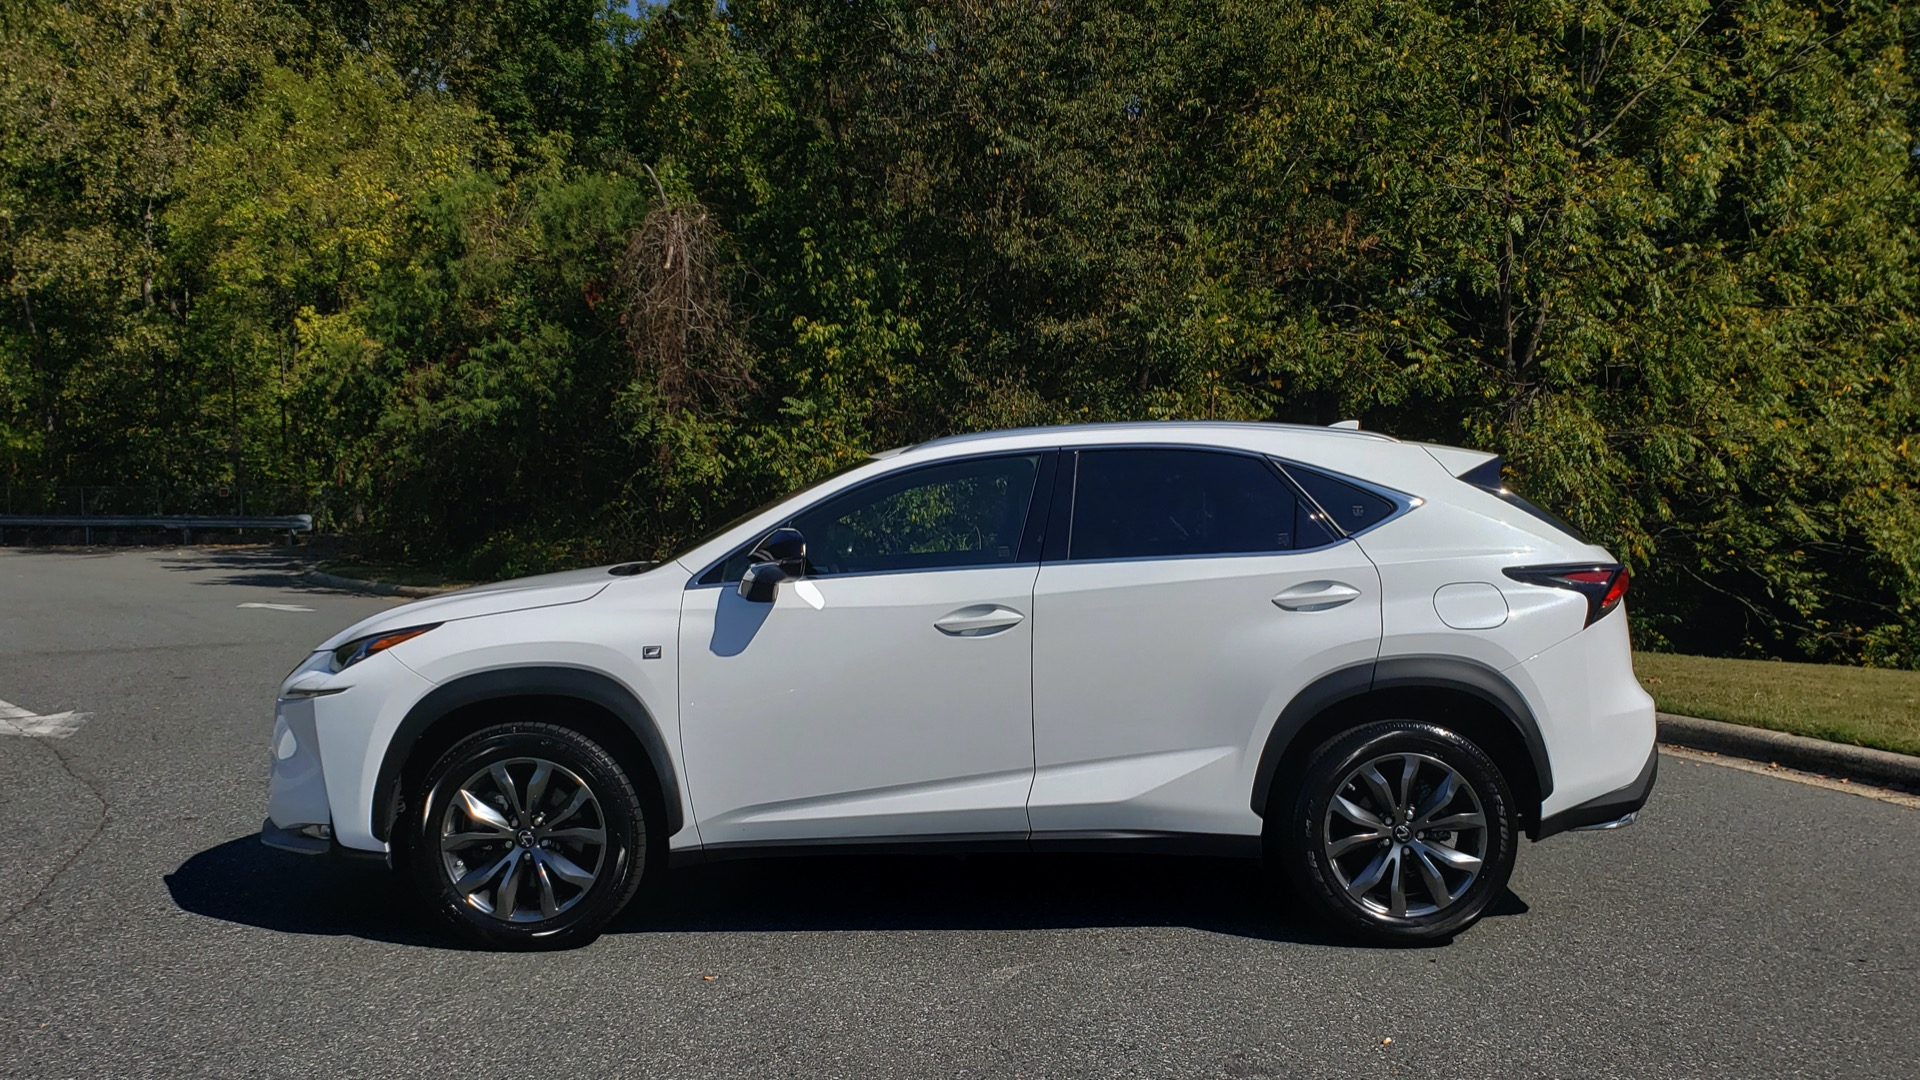 Used 2016 Lexus NX 200t F-SPORT / BACK-UP CAMERA / 18 INCH WHEELS for sale Sold at Formula Imports in Charlotte NC 28227 2